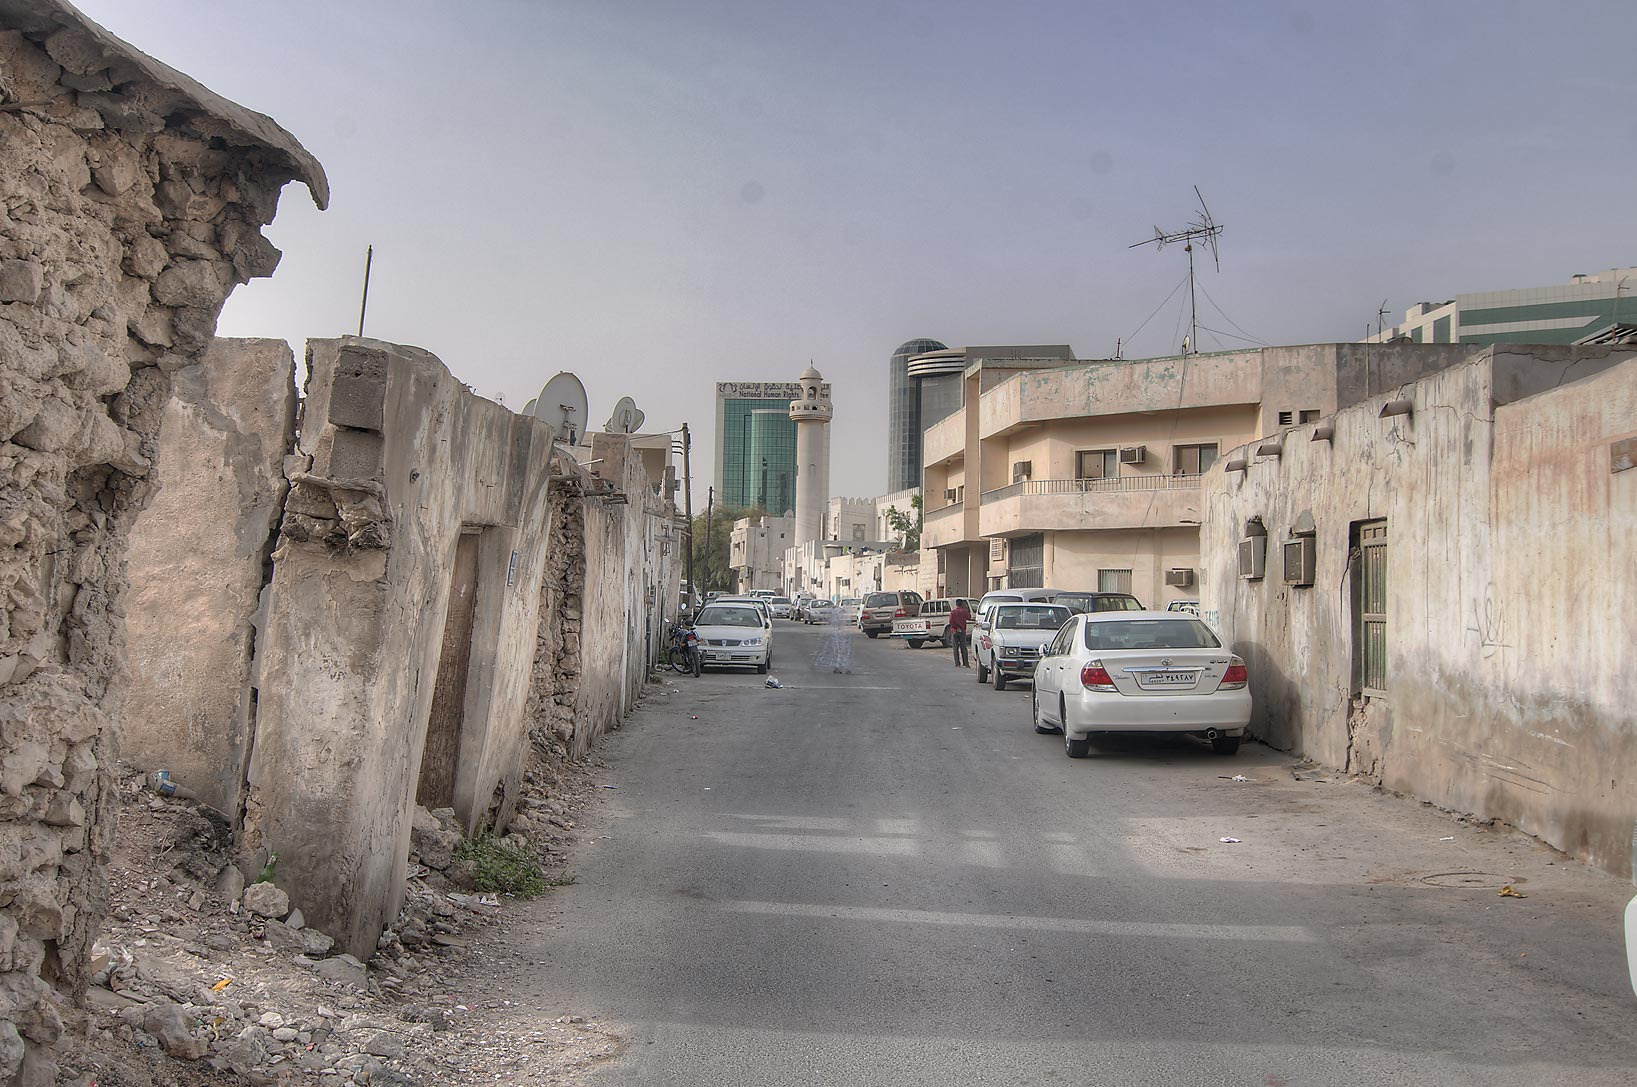 Remains of old city near Umm Wishah St. in Musheirib area. Doha, Qatar